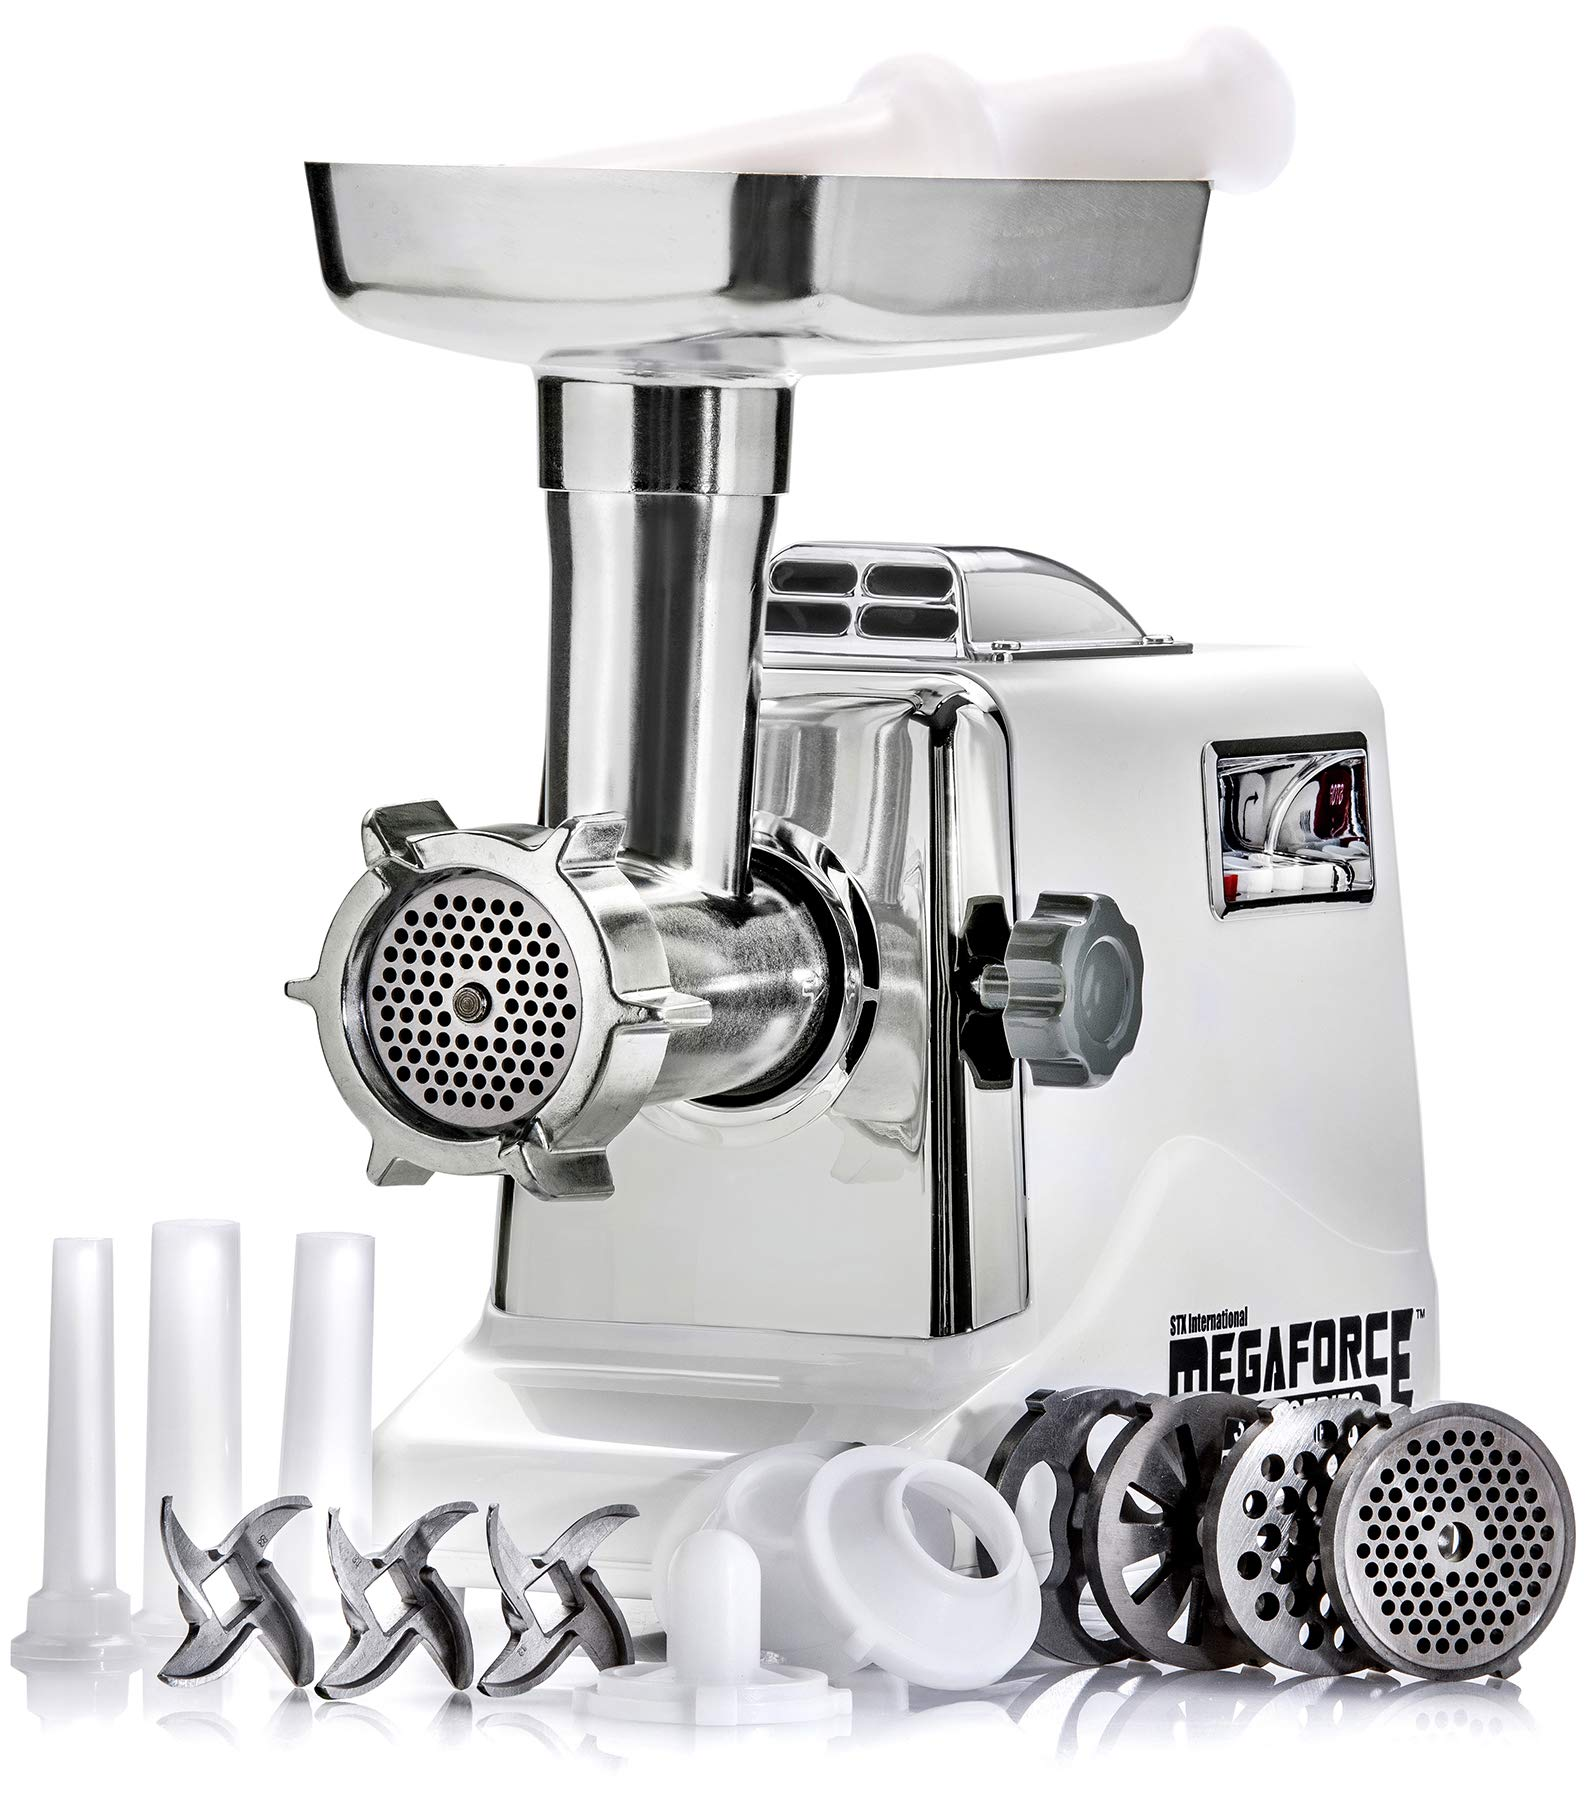 STX INTERNATIONAL STX-3000-MF Megaforce Patented Air Cooled Electric Meat Grinder with 3 Cutting Blades, 3 Grinding Plates, Kubbe and 3 Sausage Stuffing Tubes by STX INTERNATIONAL